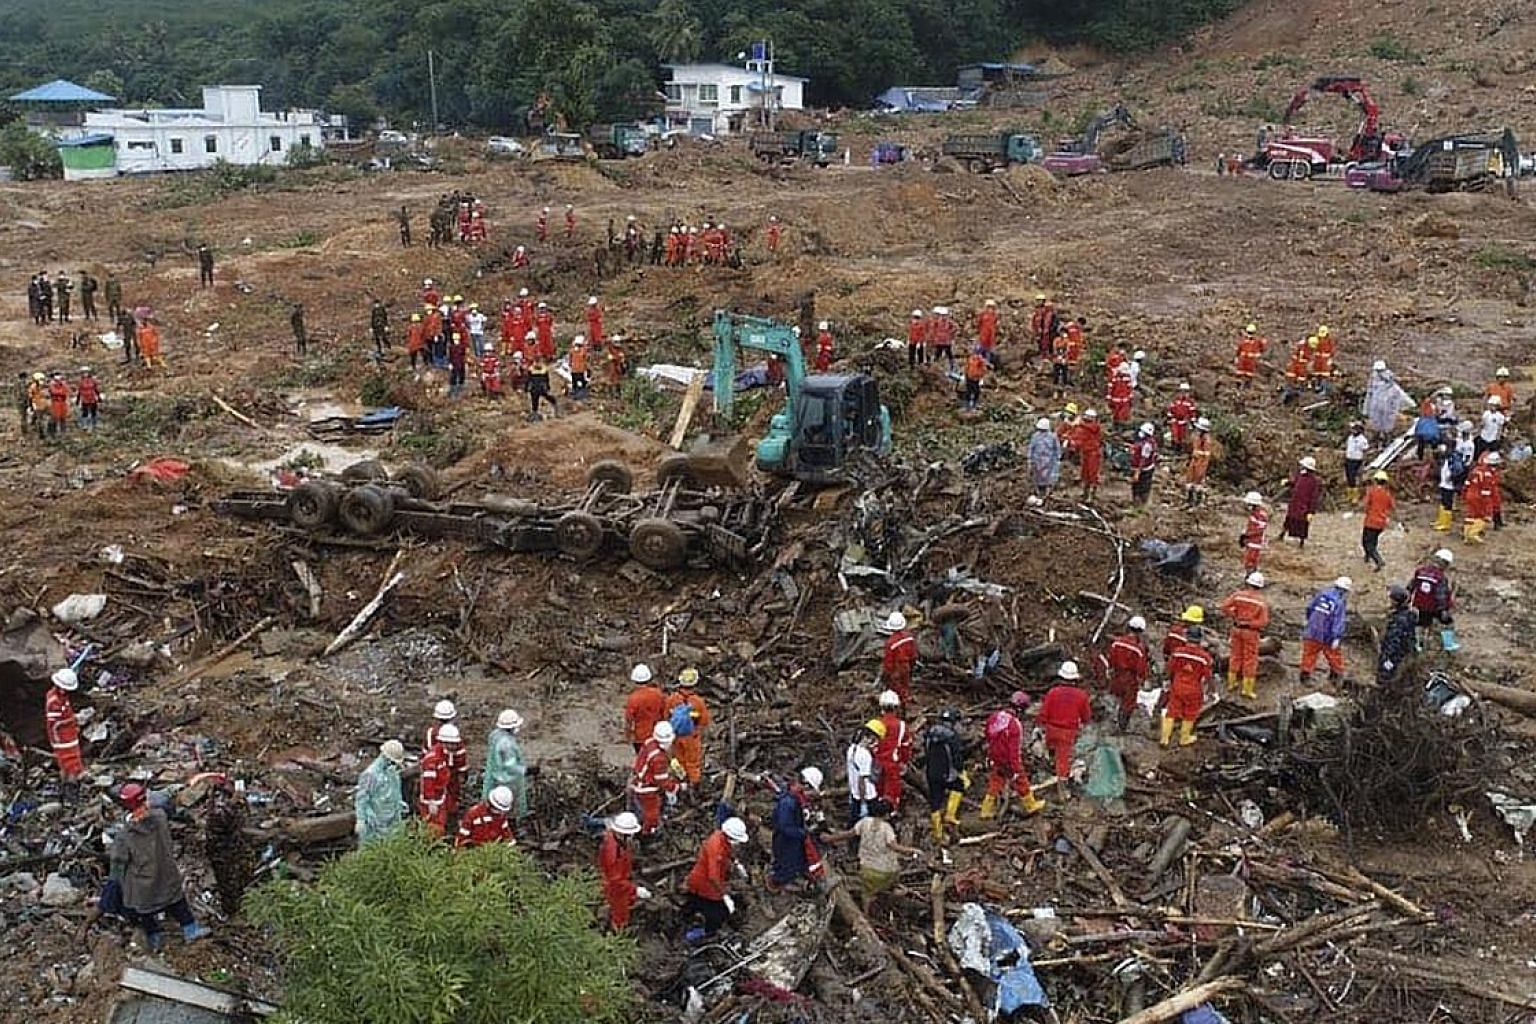 A photo from the Myanmar Fire Service Department showing rescue workers at a landslide-hit area in Paung township, Mon state, yesterday. A bulletin from the International Federation of Red Cross and Red Crescent Societies says more than 134,000 peopl